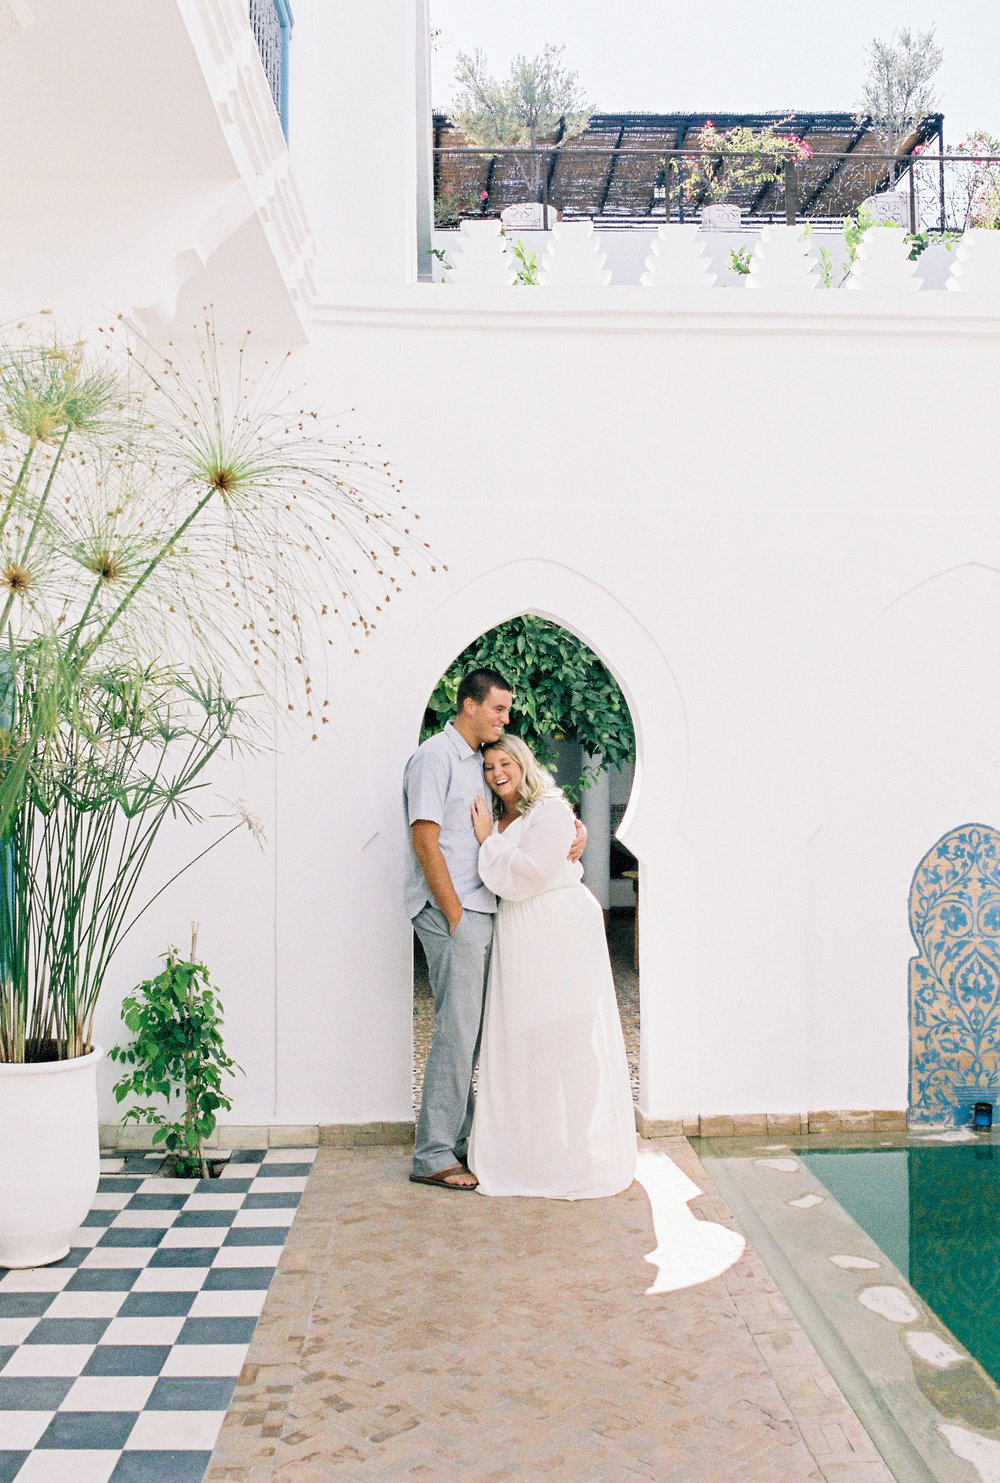 maria_rao_photography_ honeymoon_marrakesh-6.jpg